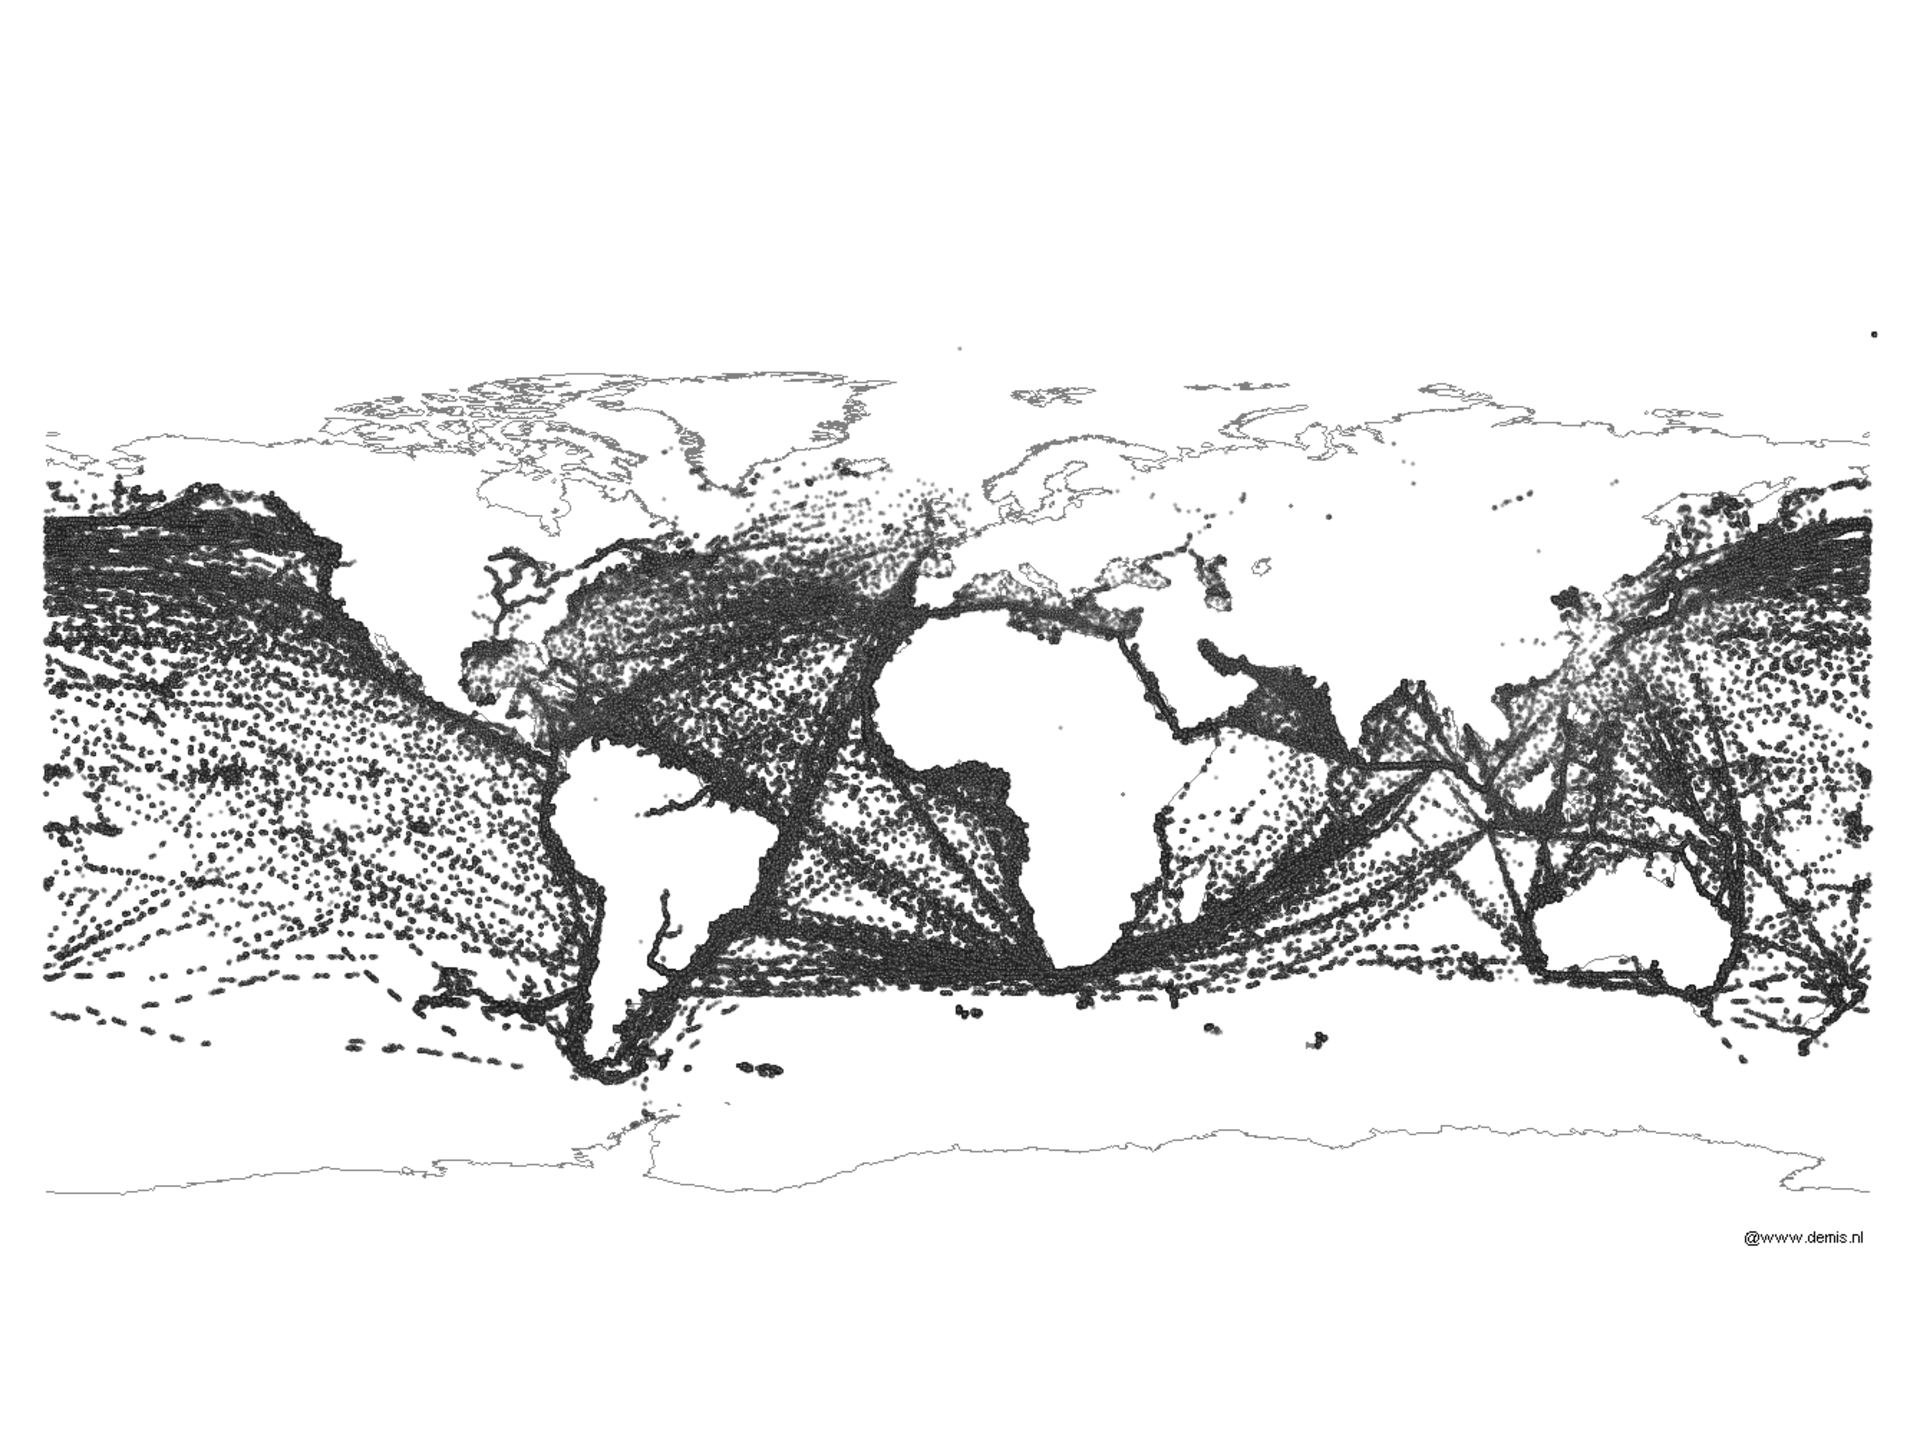 Ship routes plotted over time